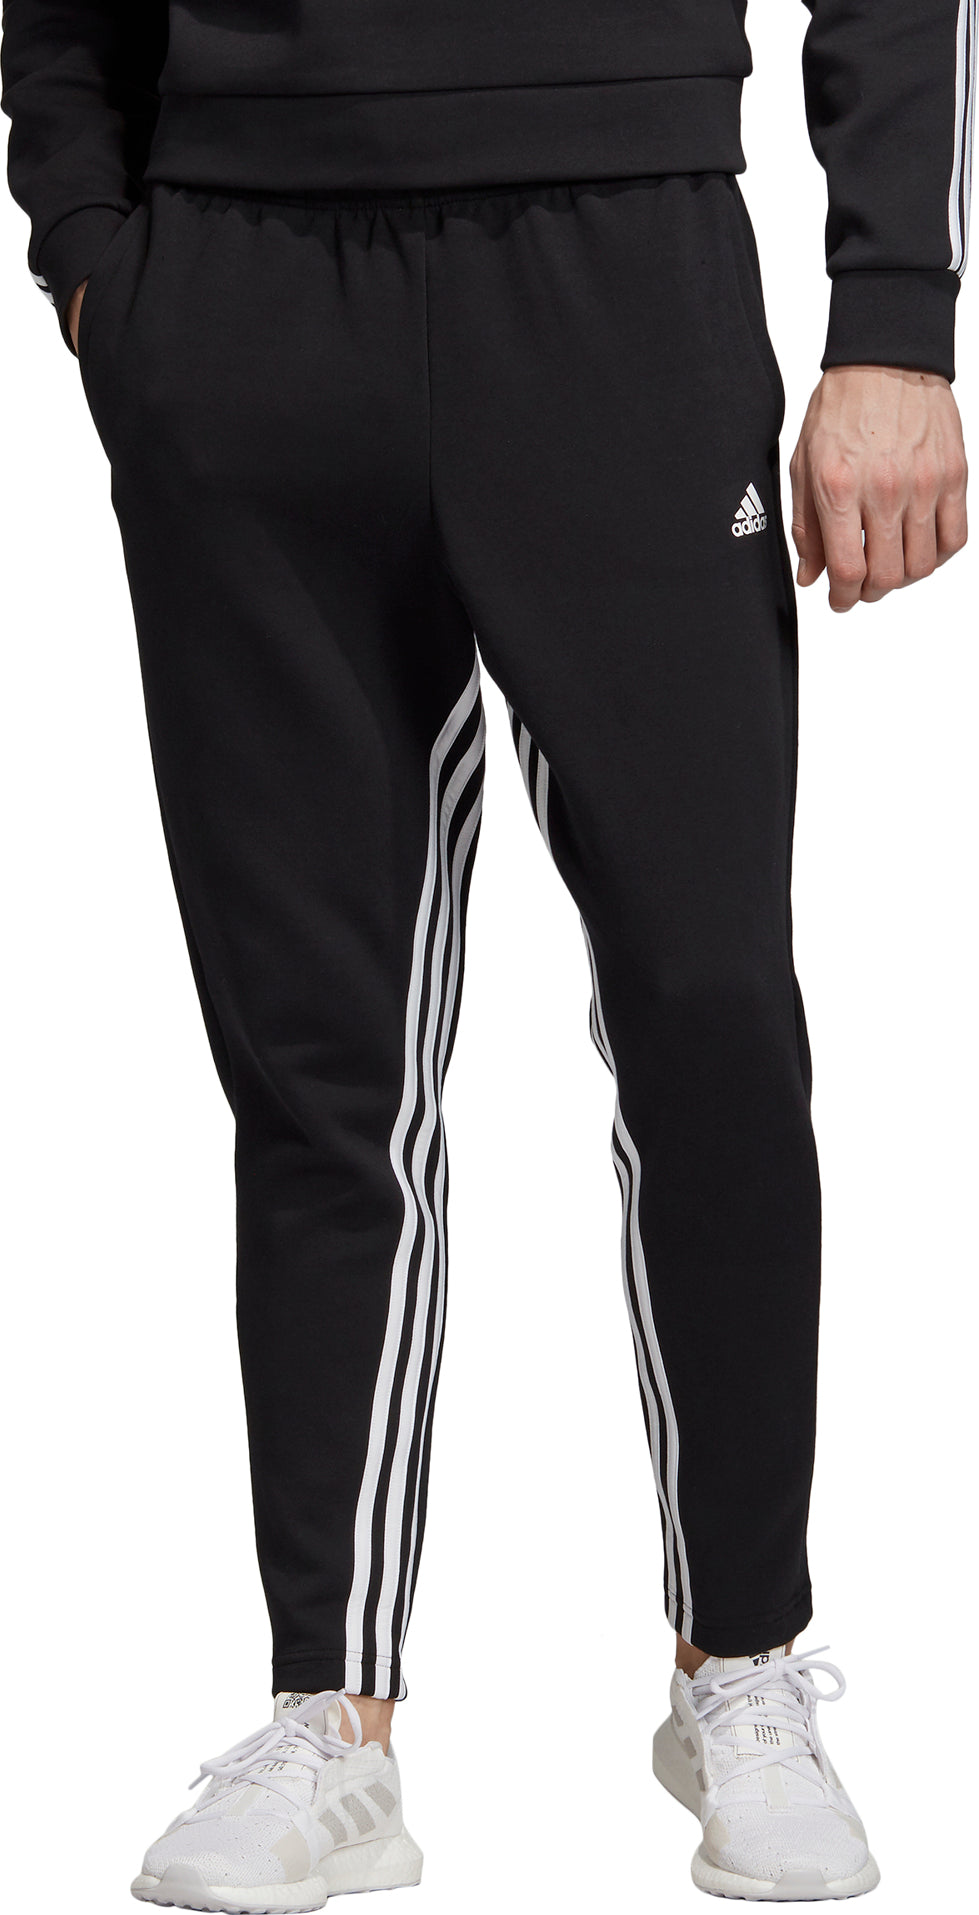 Adidas Must Haves 3-Stripes Tapered Pants - Men's